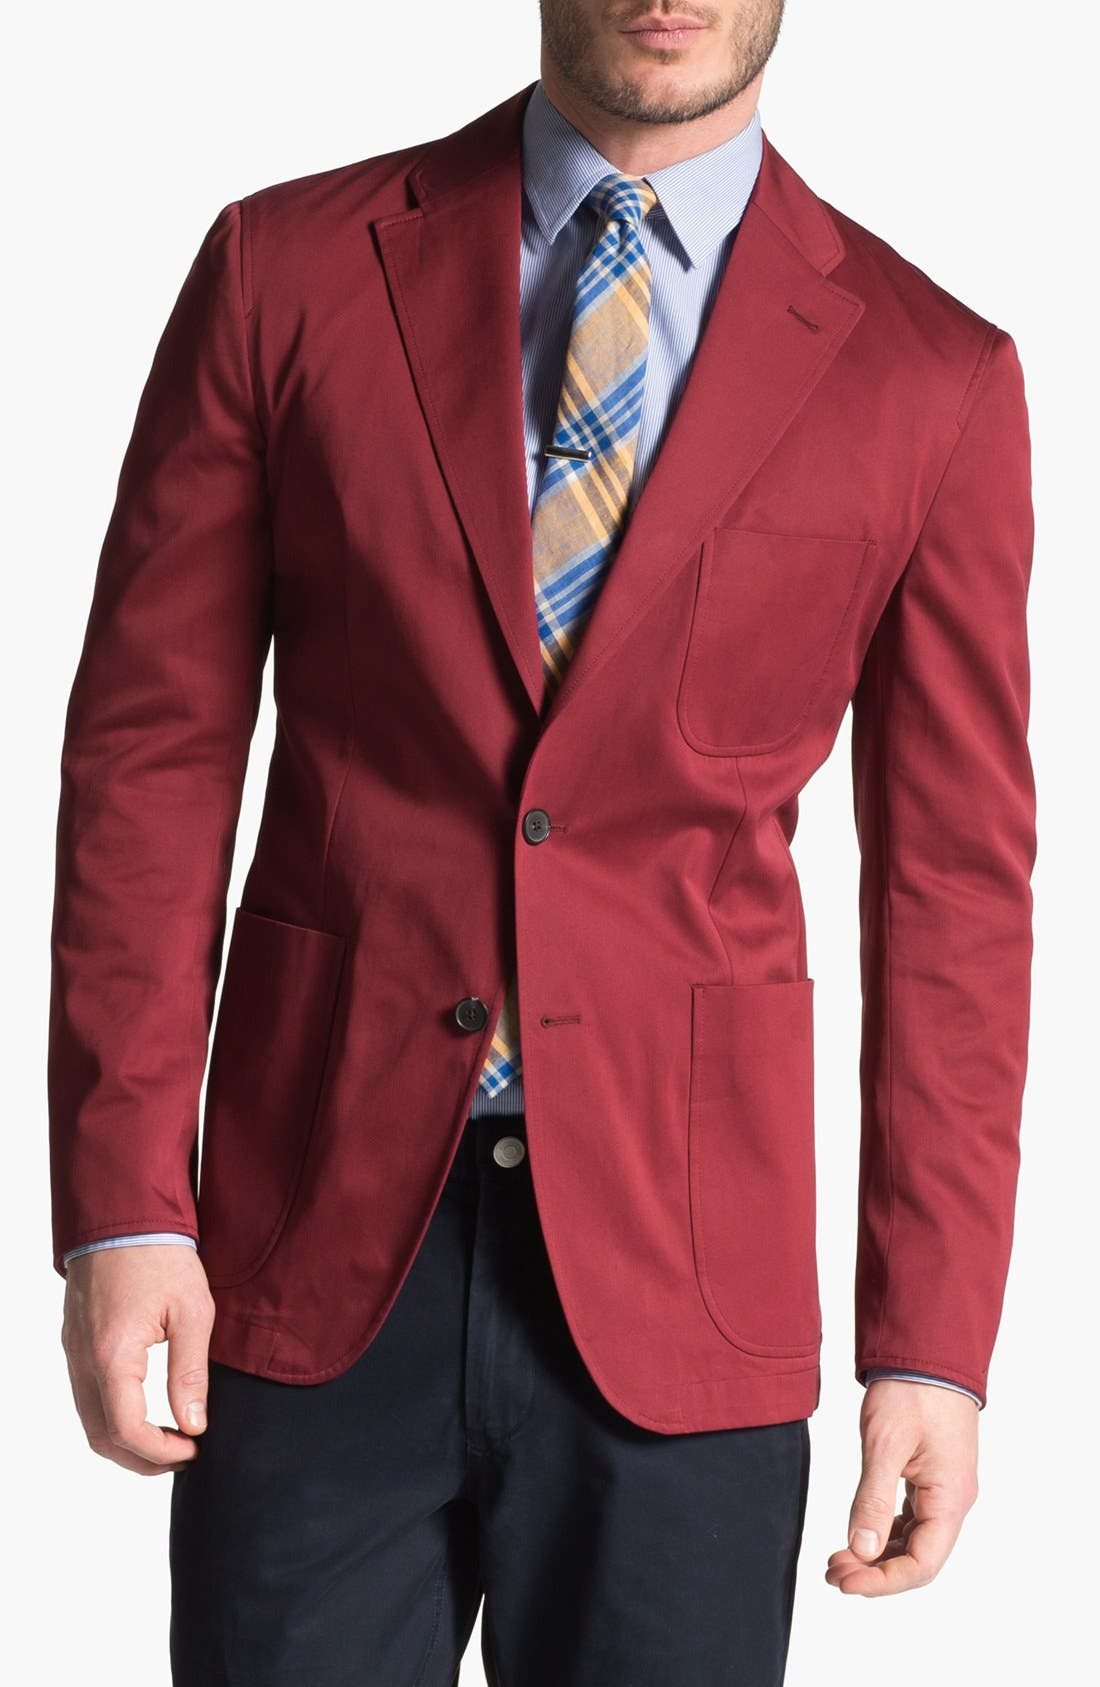 Main Image - Joseph Abboud Trim Fit Cotton Blazer